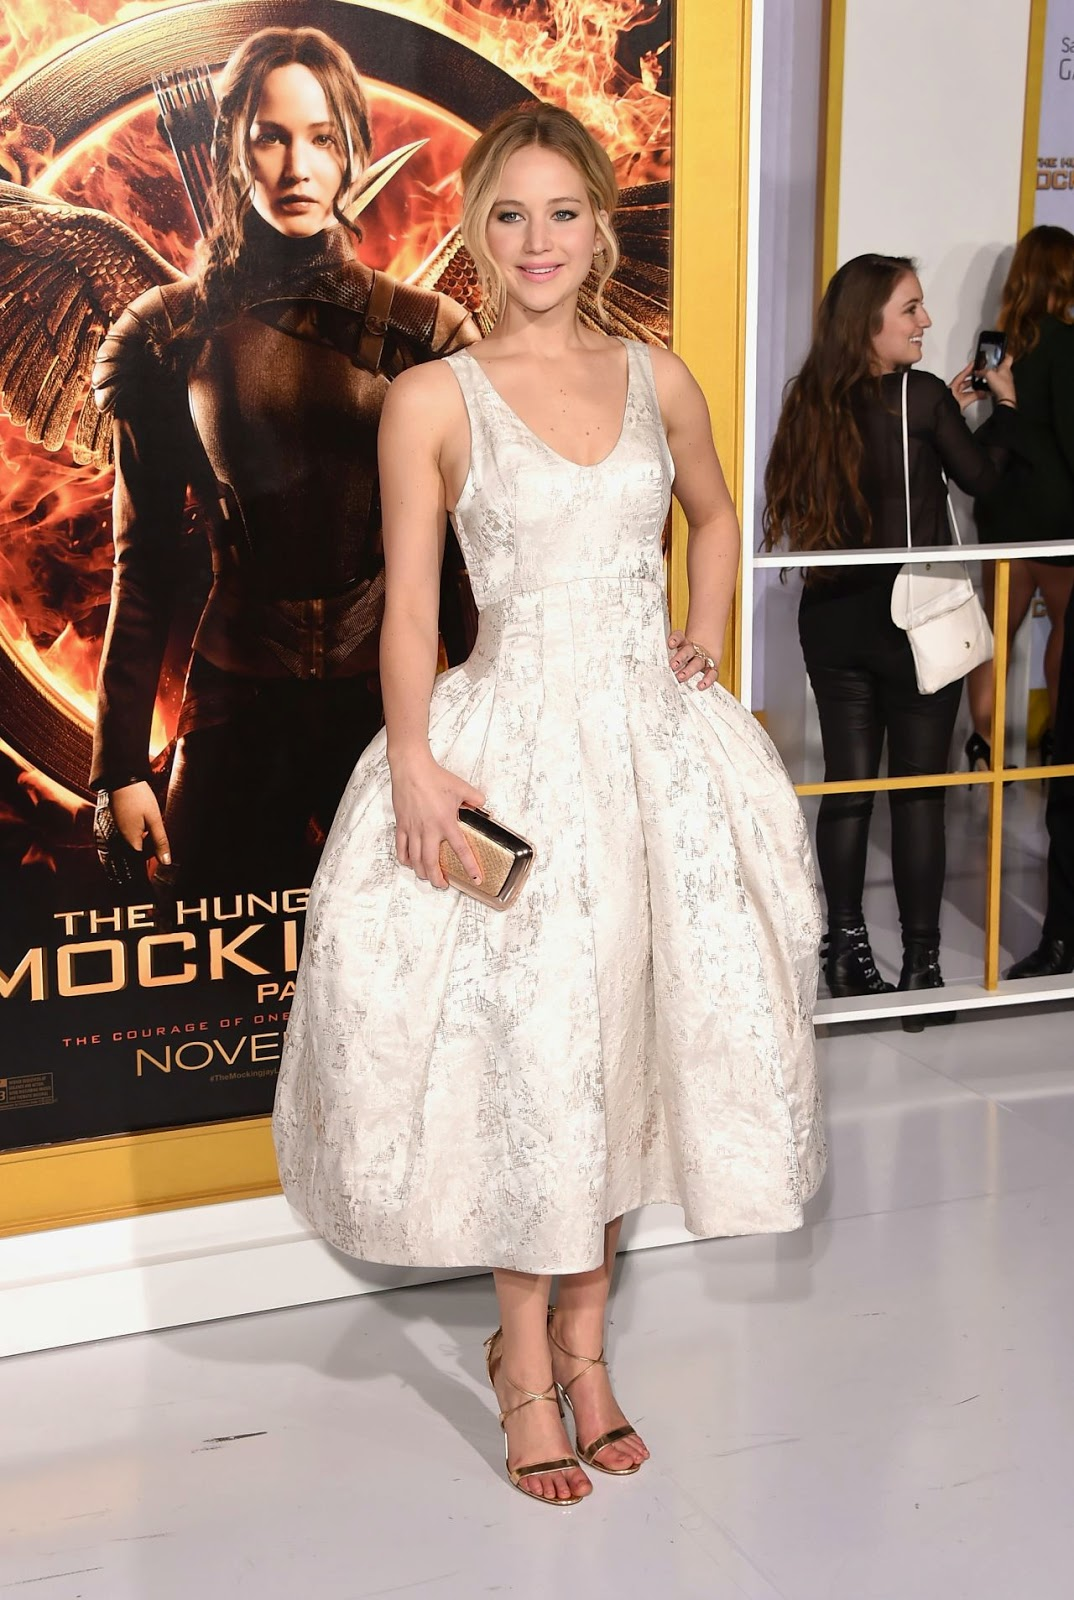 Jennifer Lawrence is charming in Christian Dior Couture at The Hunger Games: Mockingjay Part 1 LA premiere